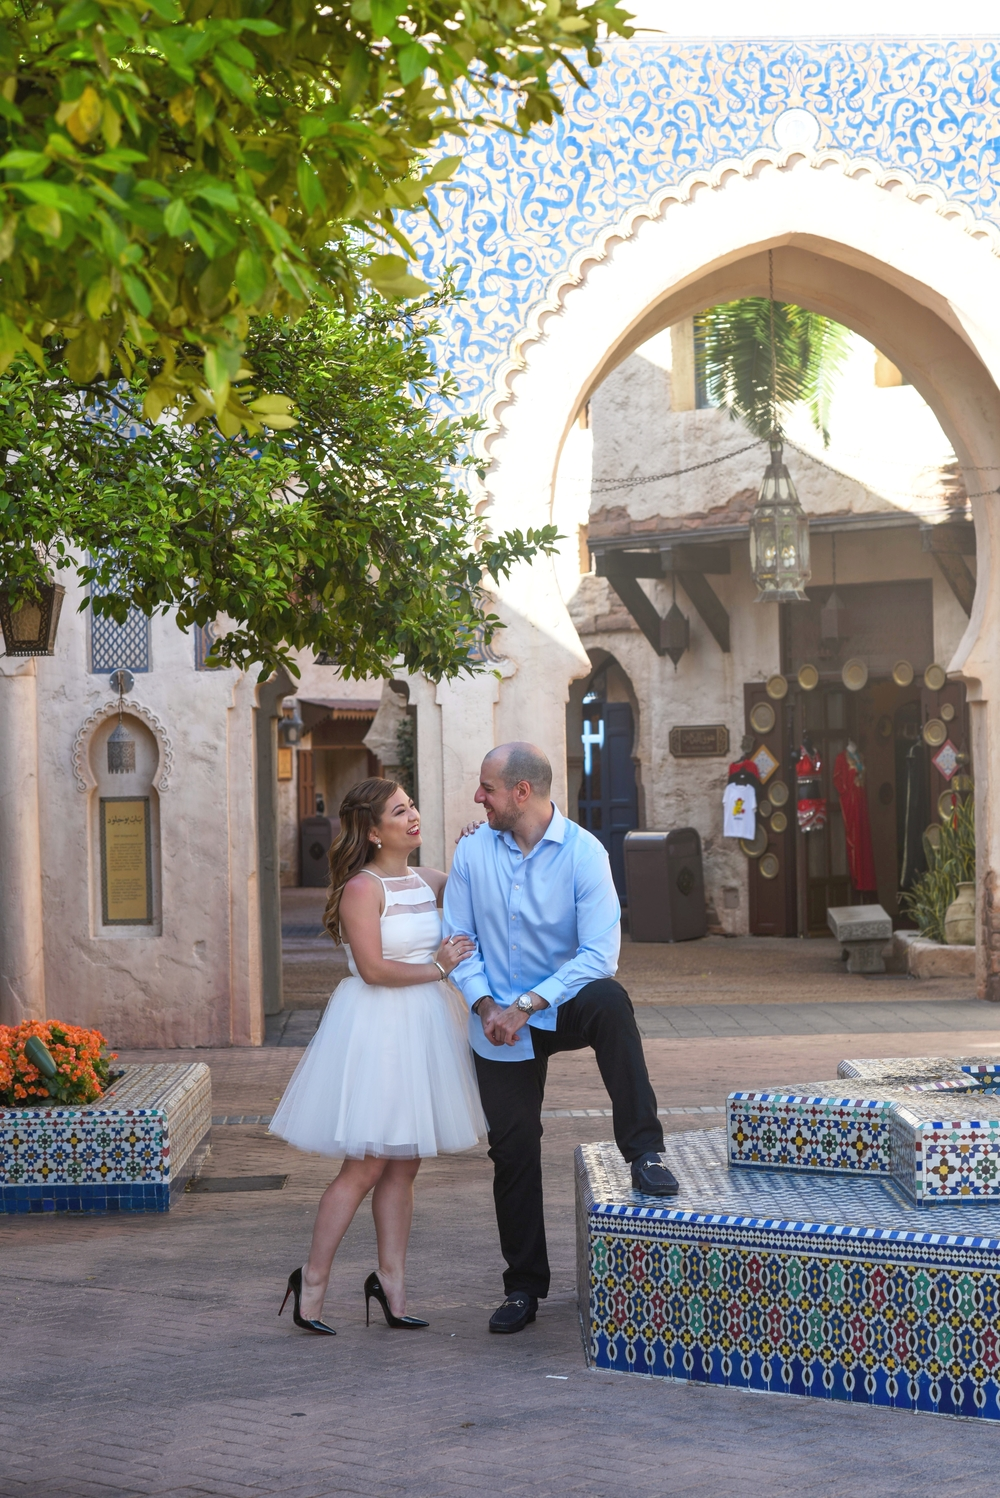 risa xu epcot engagement shoot morocco walt disney world